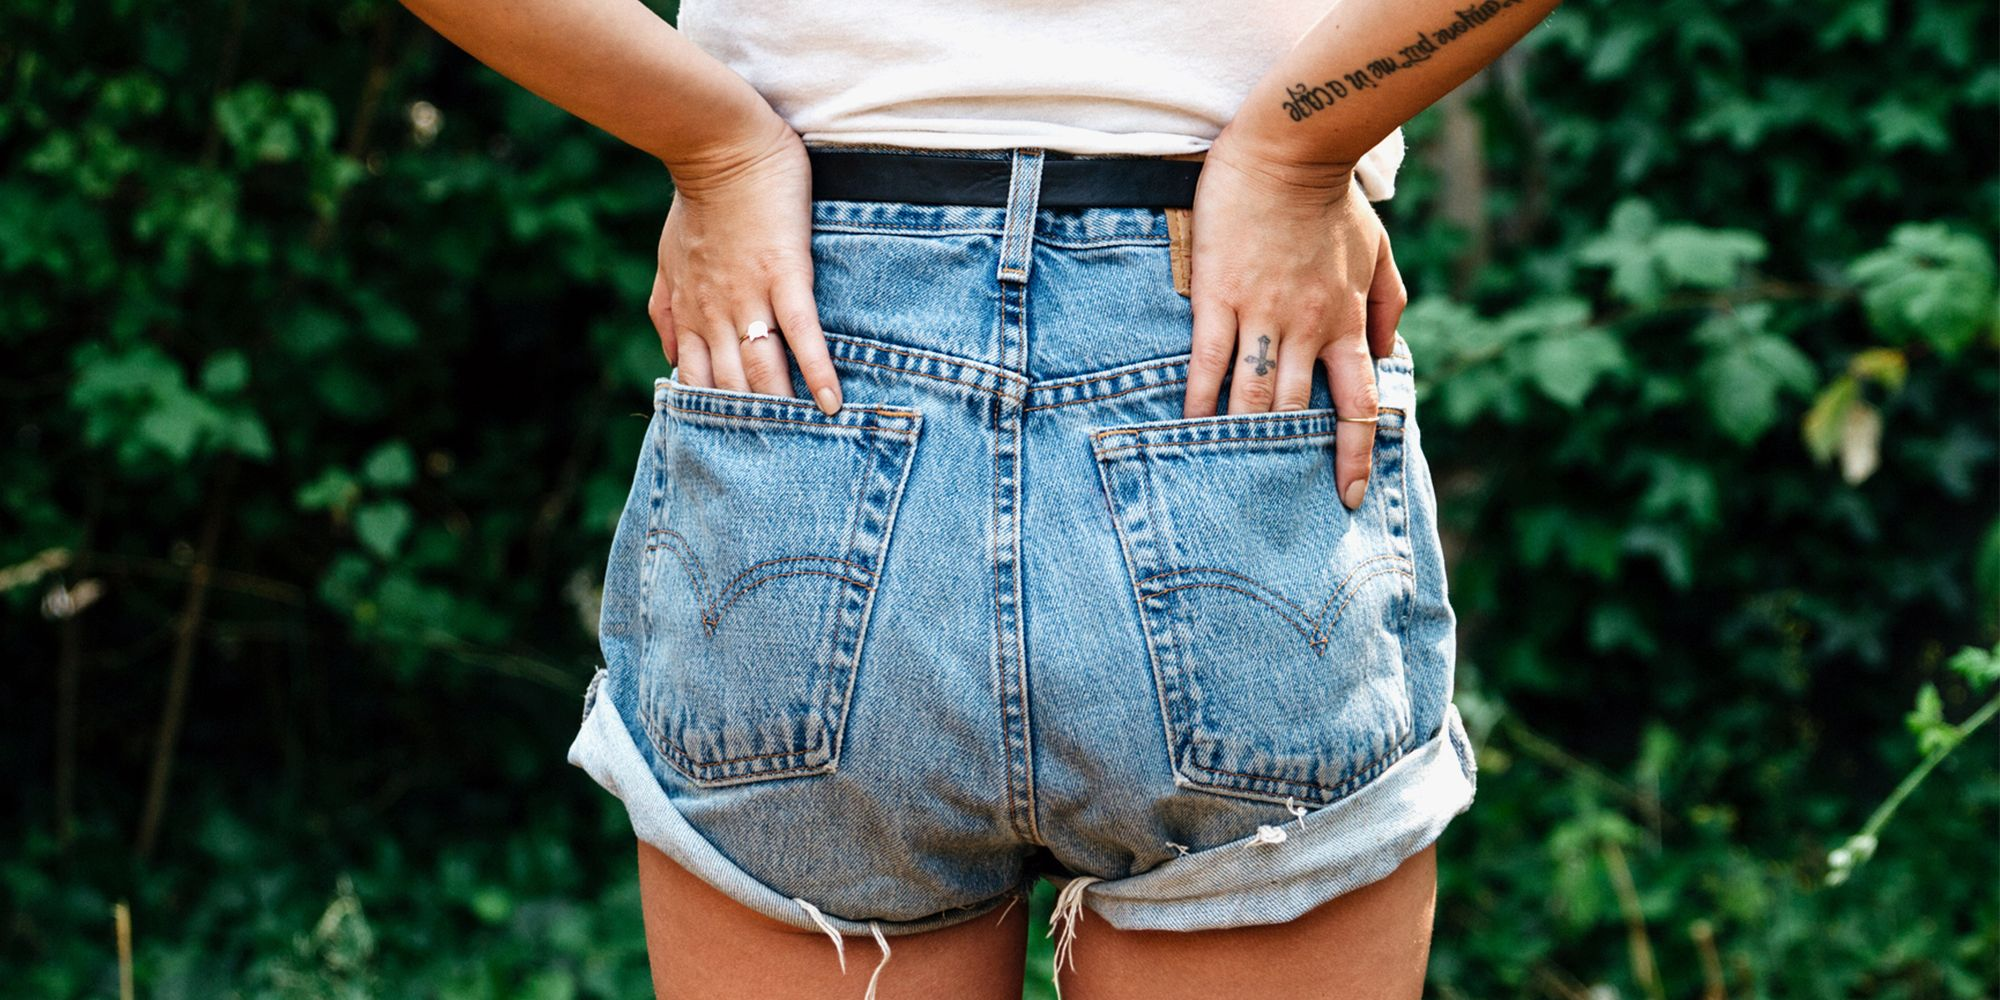 10 Best Denim Shorts to Wear This Summer 2018 - Cute Jean